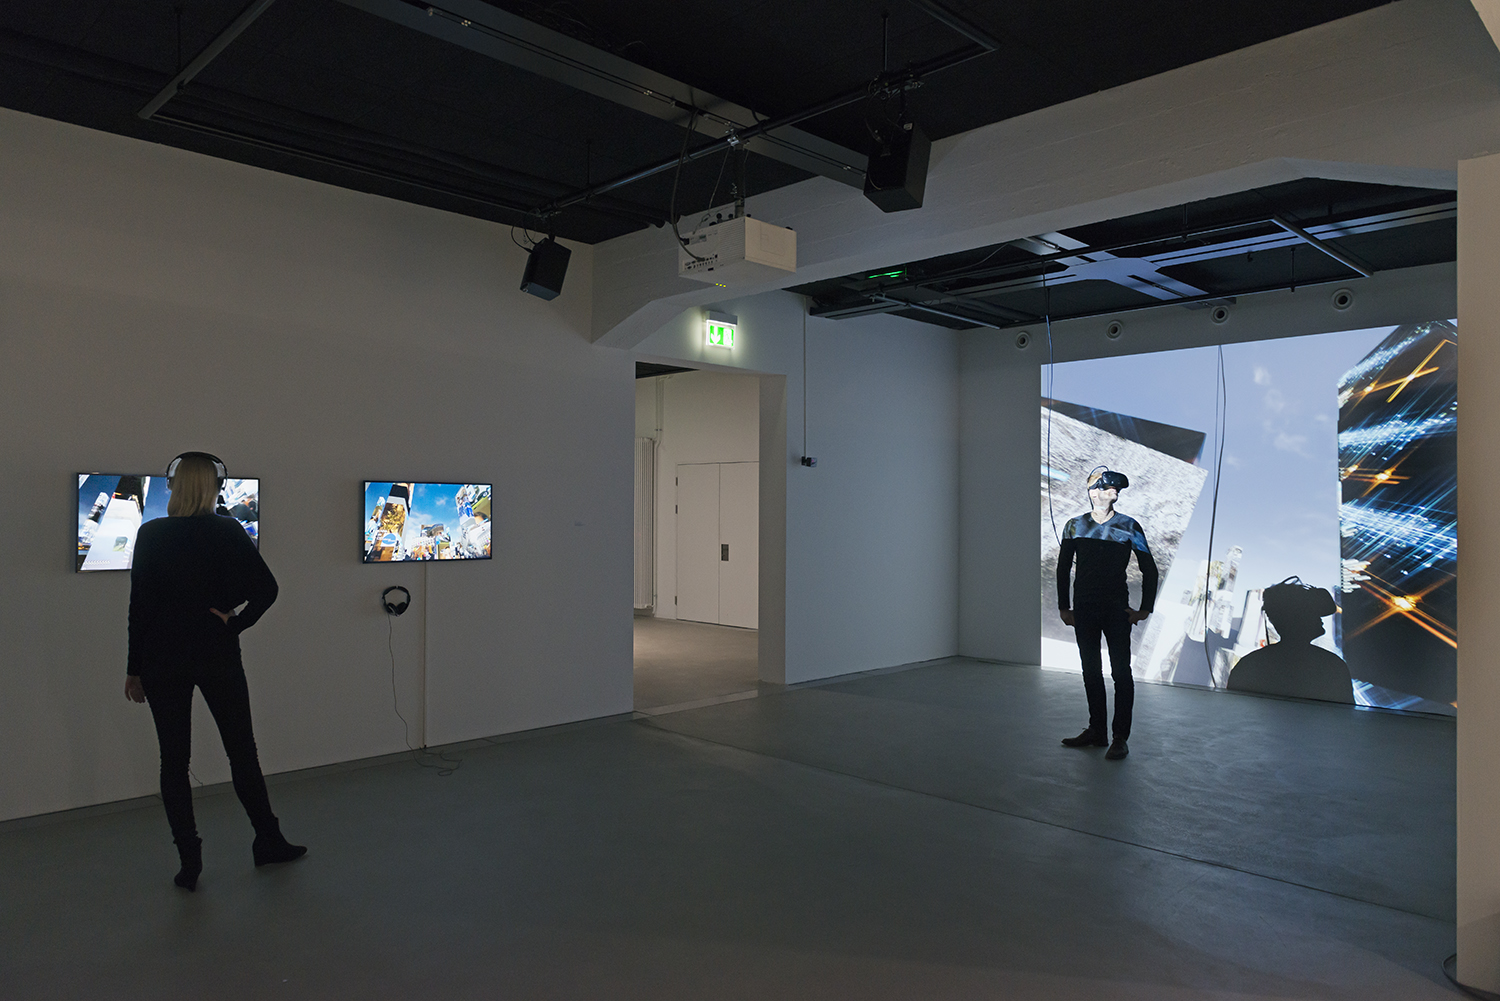 Exhibition view THE UNFRAMED WORLD at HeK Basel, artwork: Marc Lee, 10.000 moving cities - same but different (Version 4), 2016 / Photo by Franz Wamhof